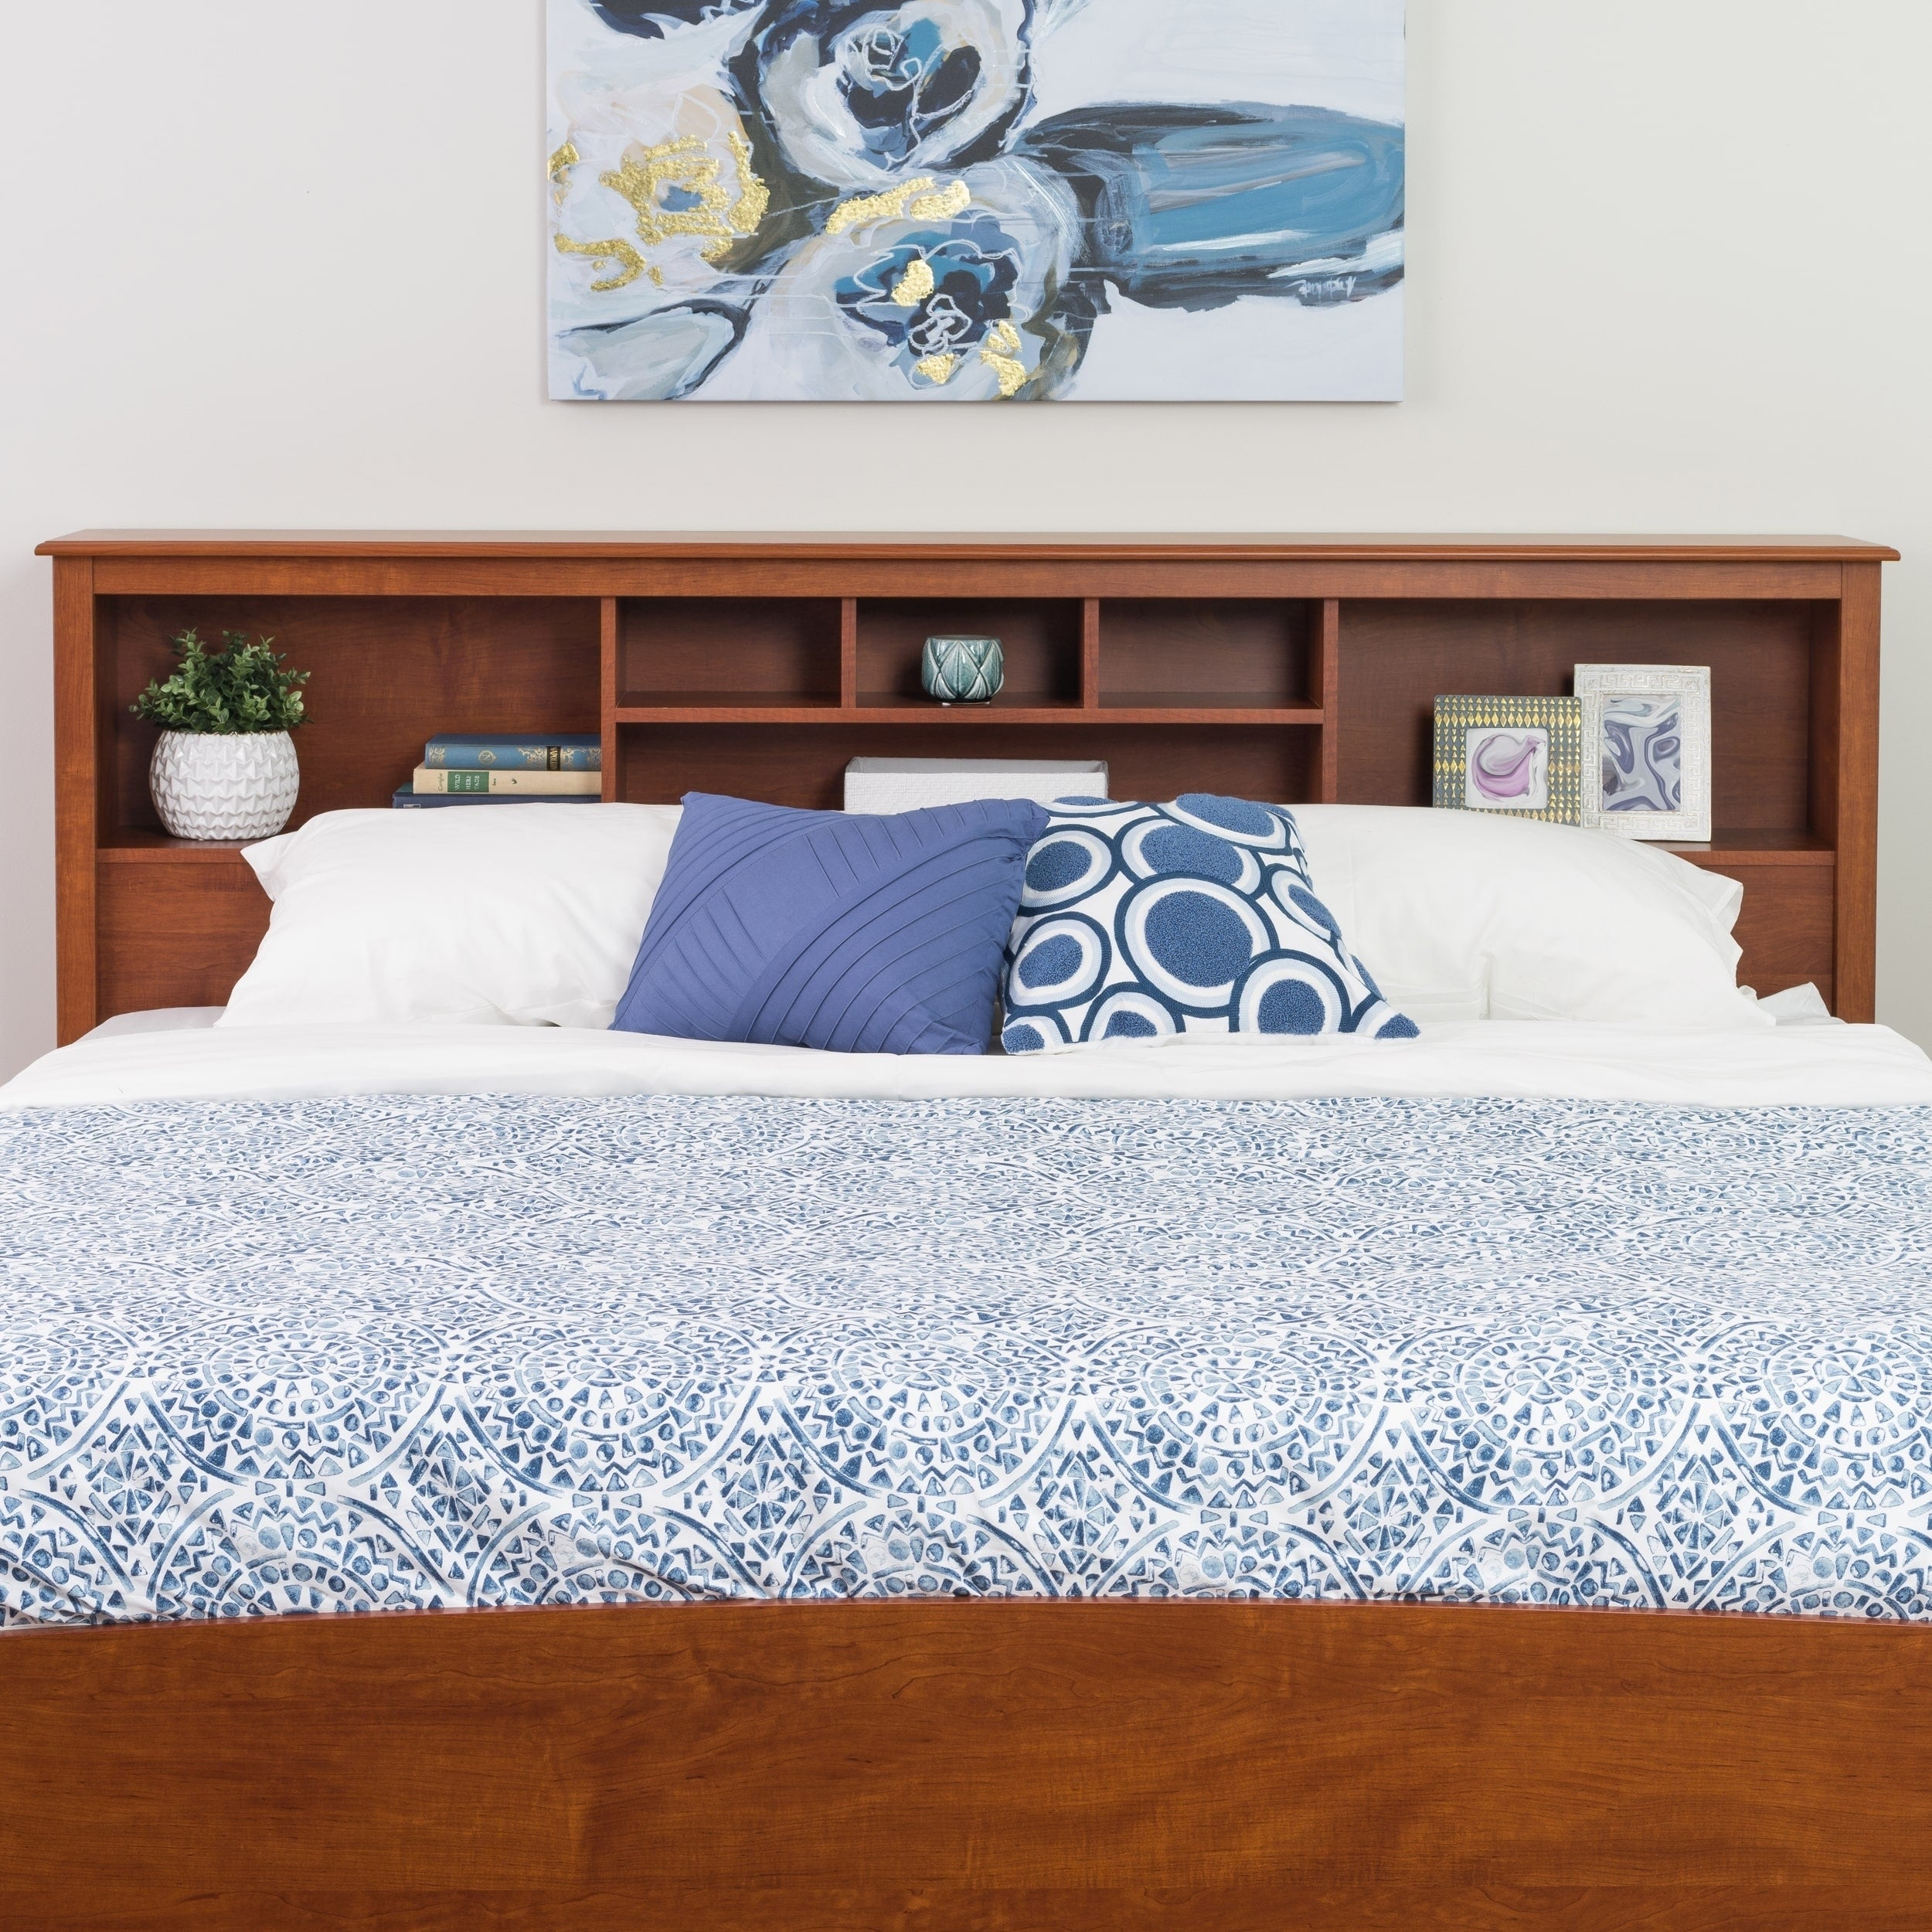 Chelsea Cherry King Bookcase Headboard - Free Shipping Today -  Overstock.com - 11127136